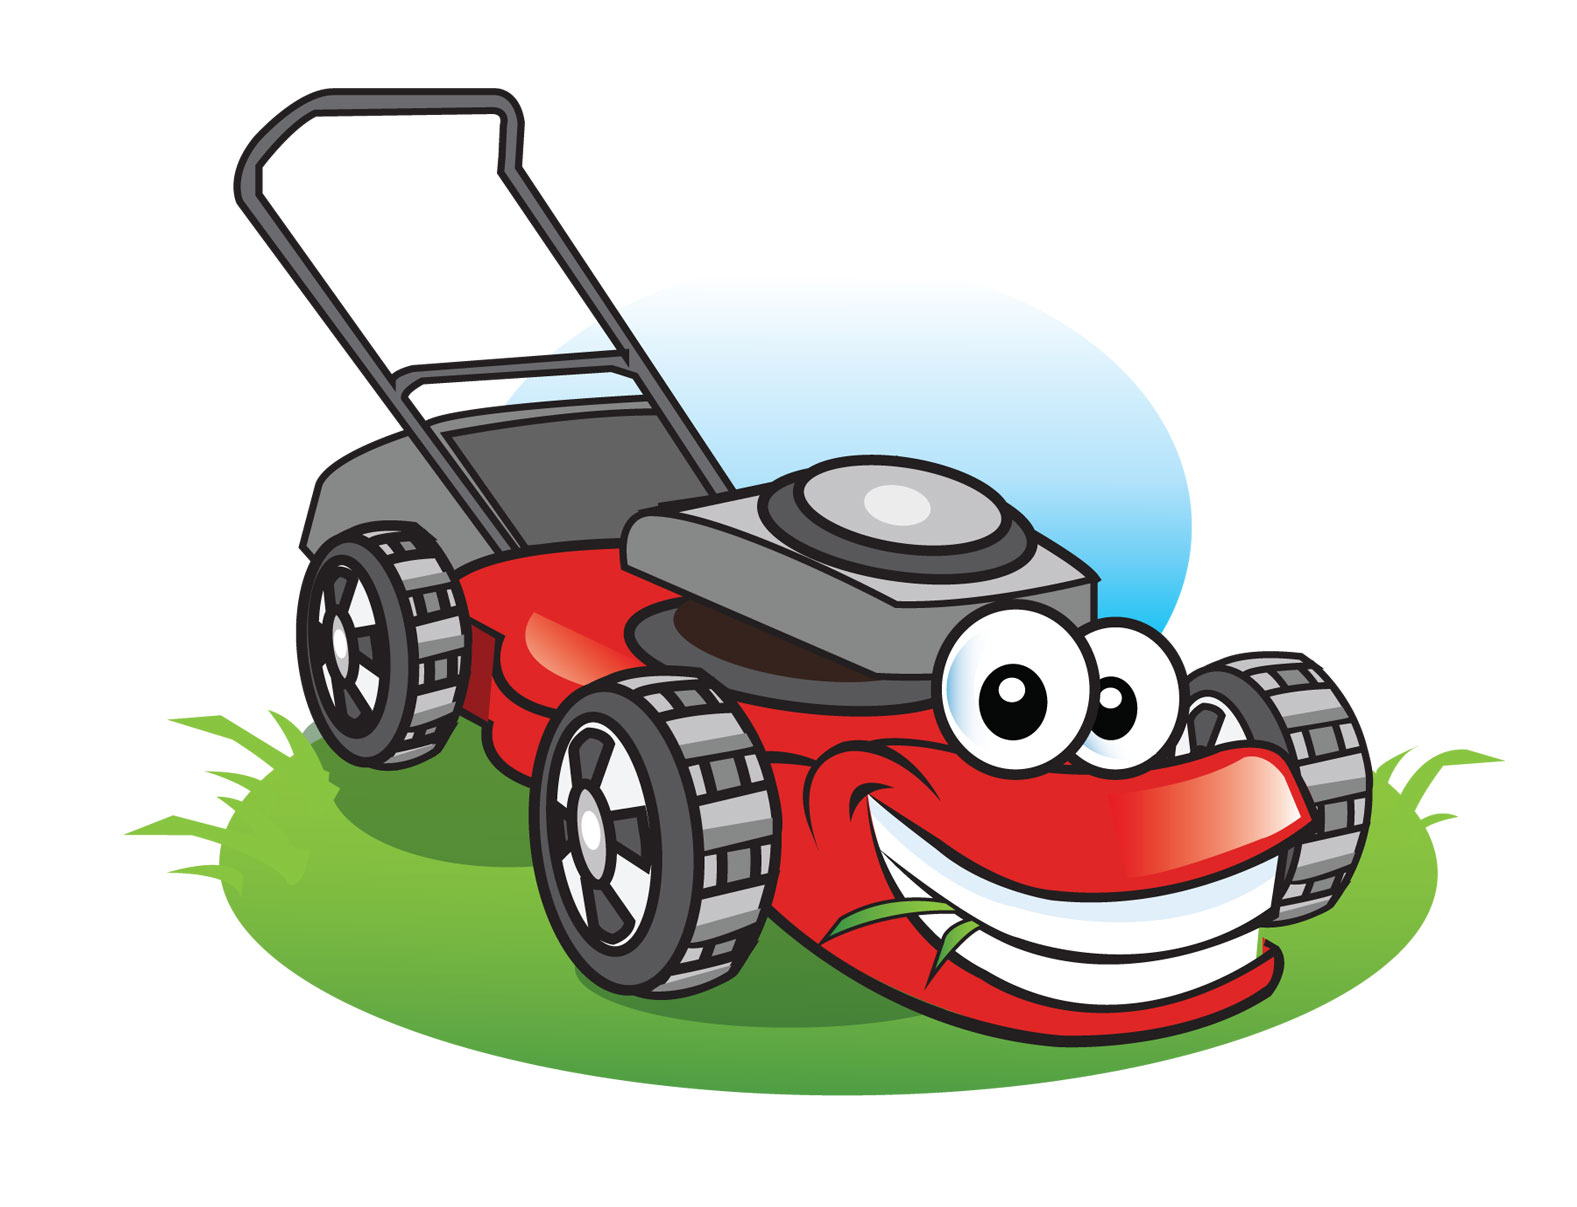 Animated Lawn Mower